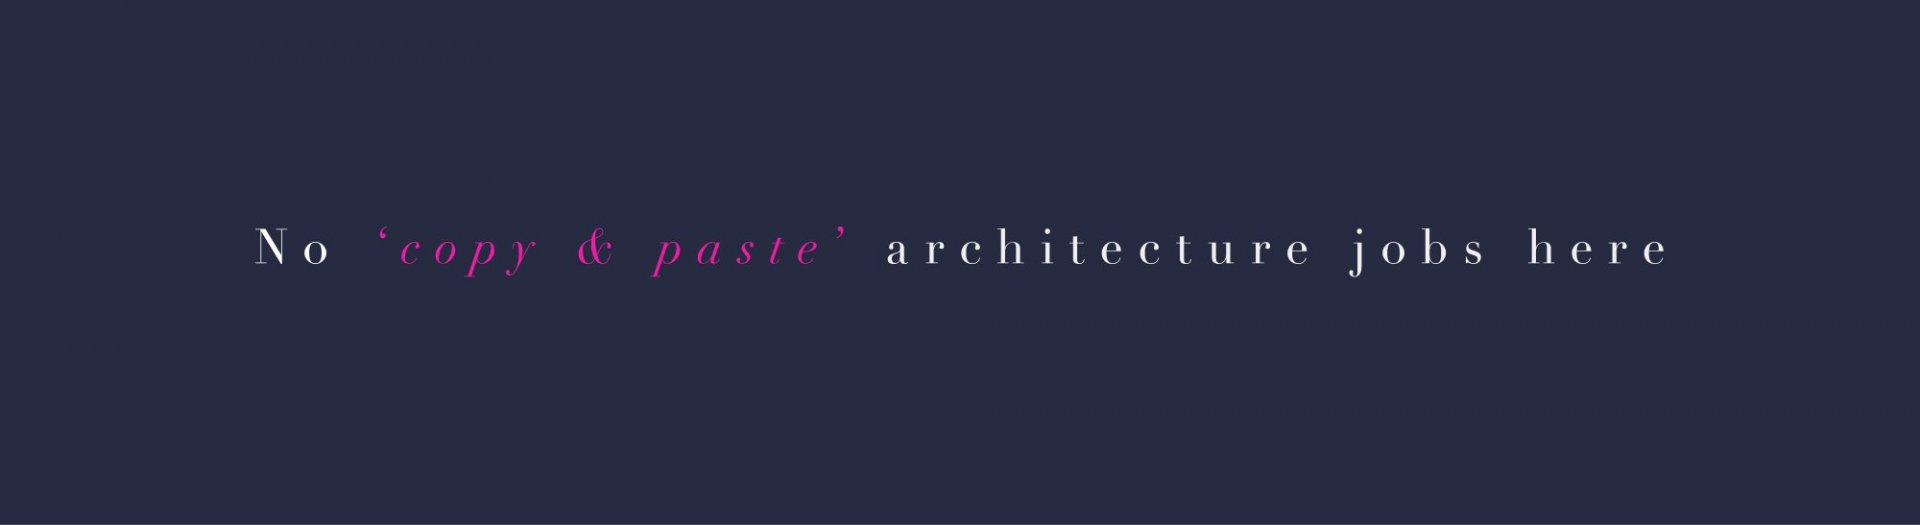 No Copy & Paste Architecture jobs here banner